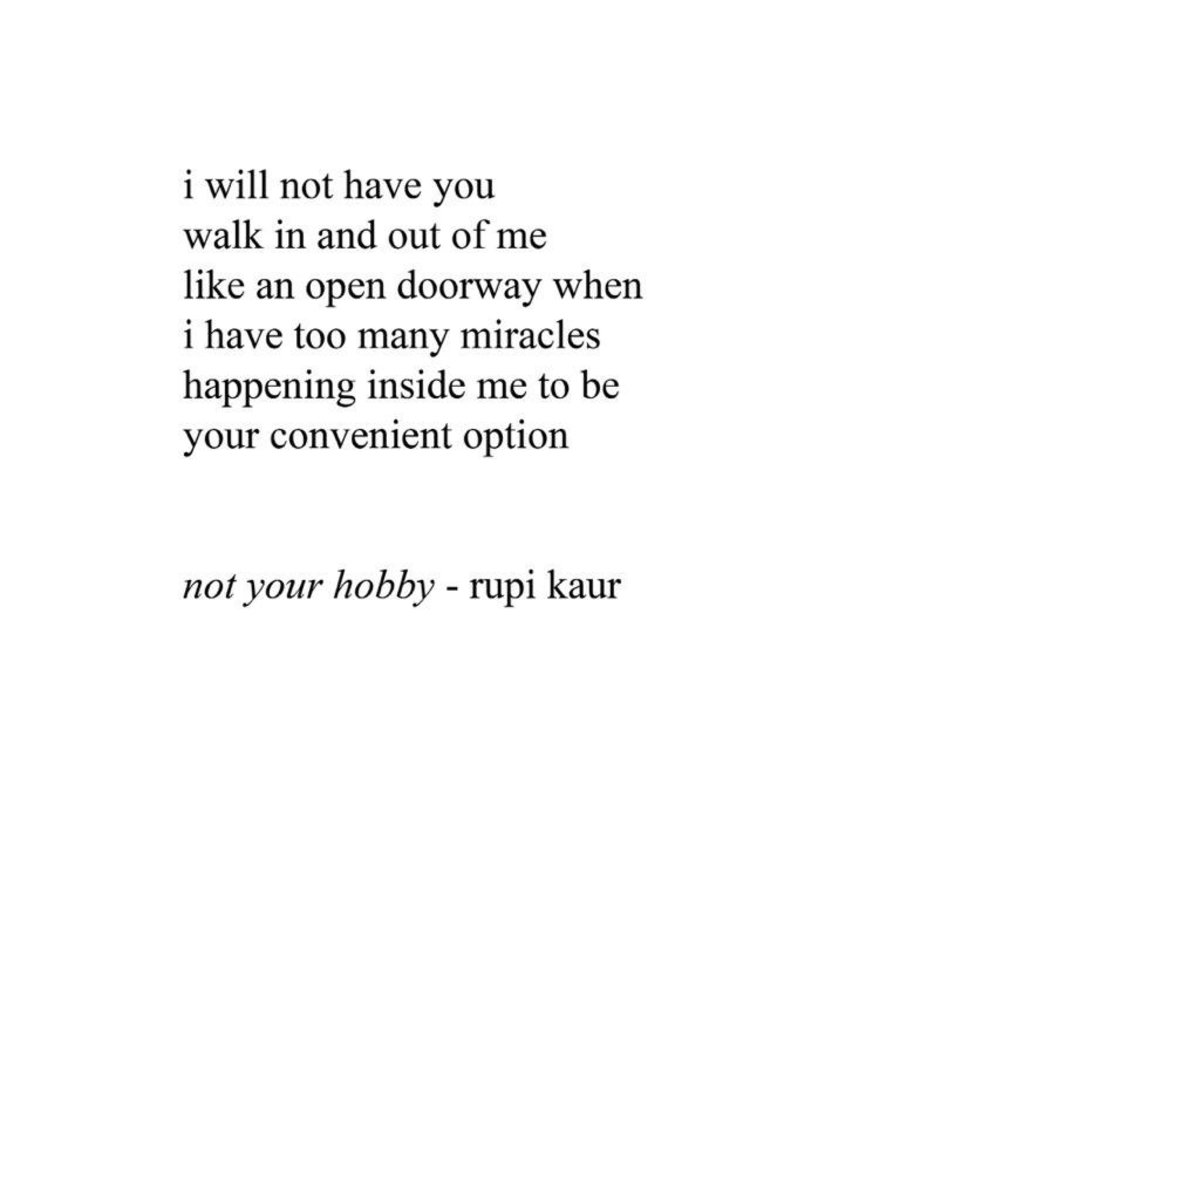 precious-poems-about-women-written-by-rupi-kaur